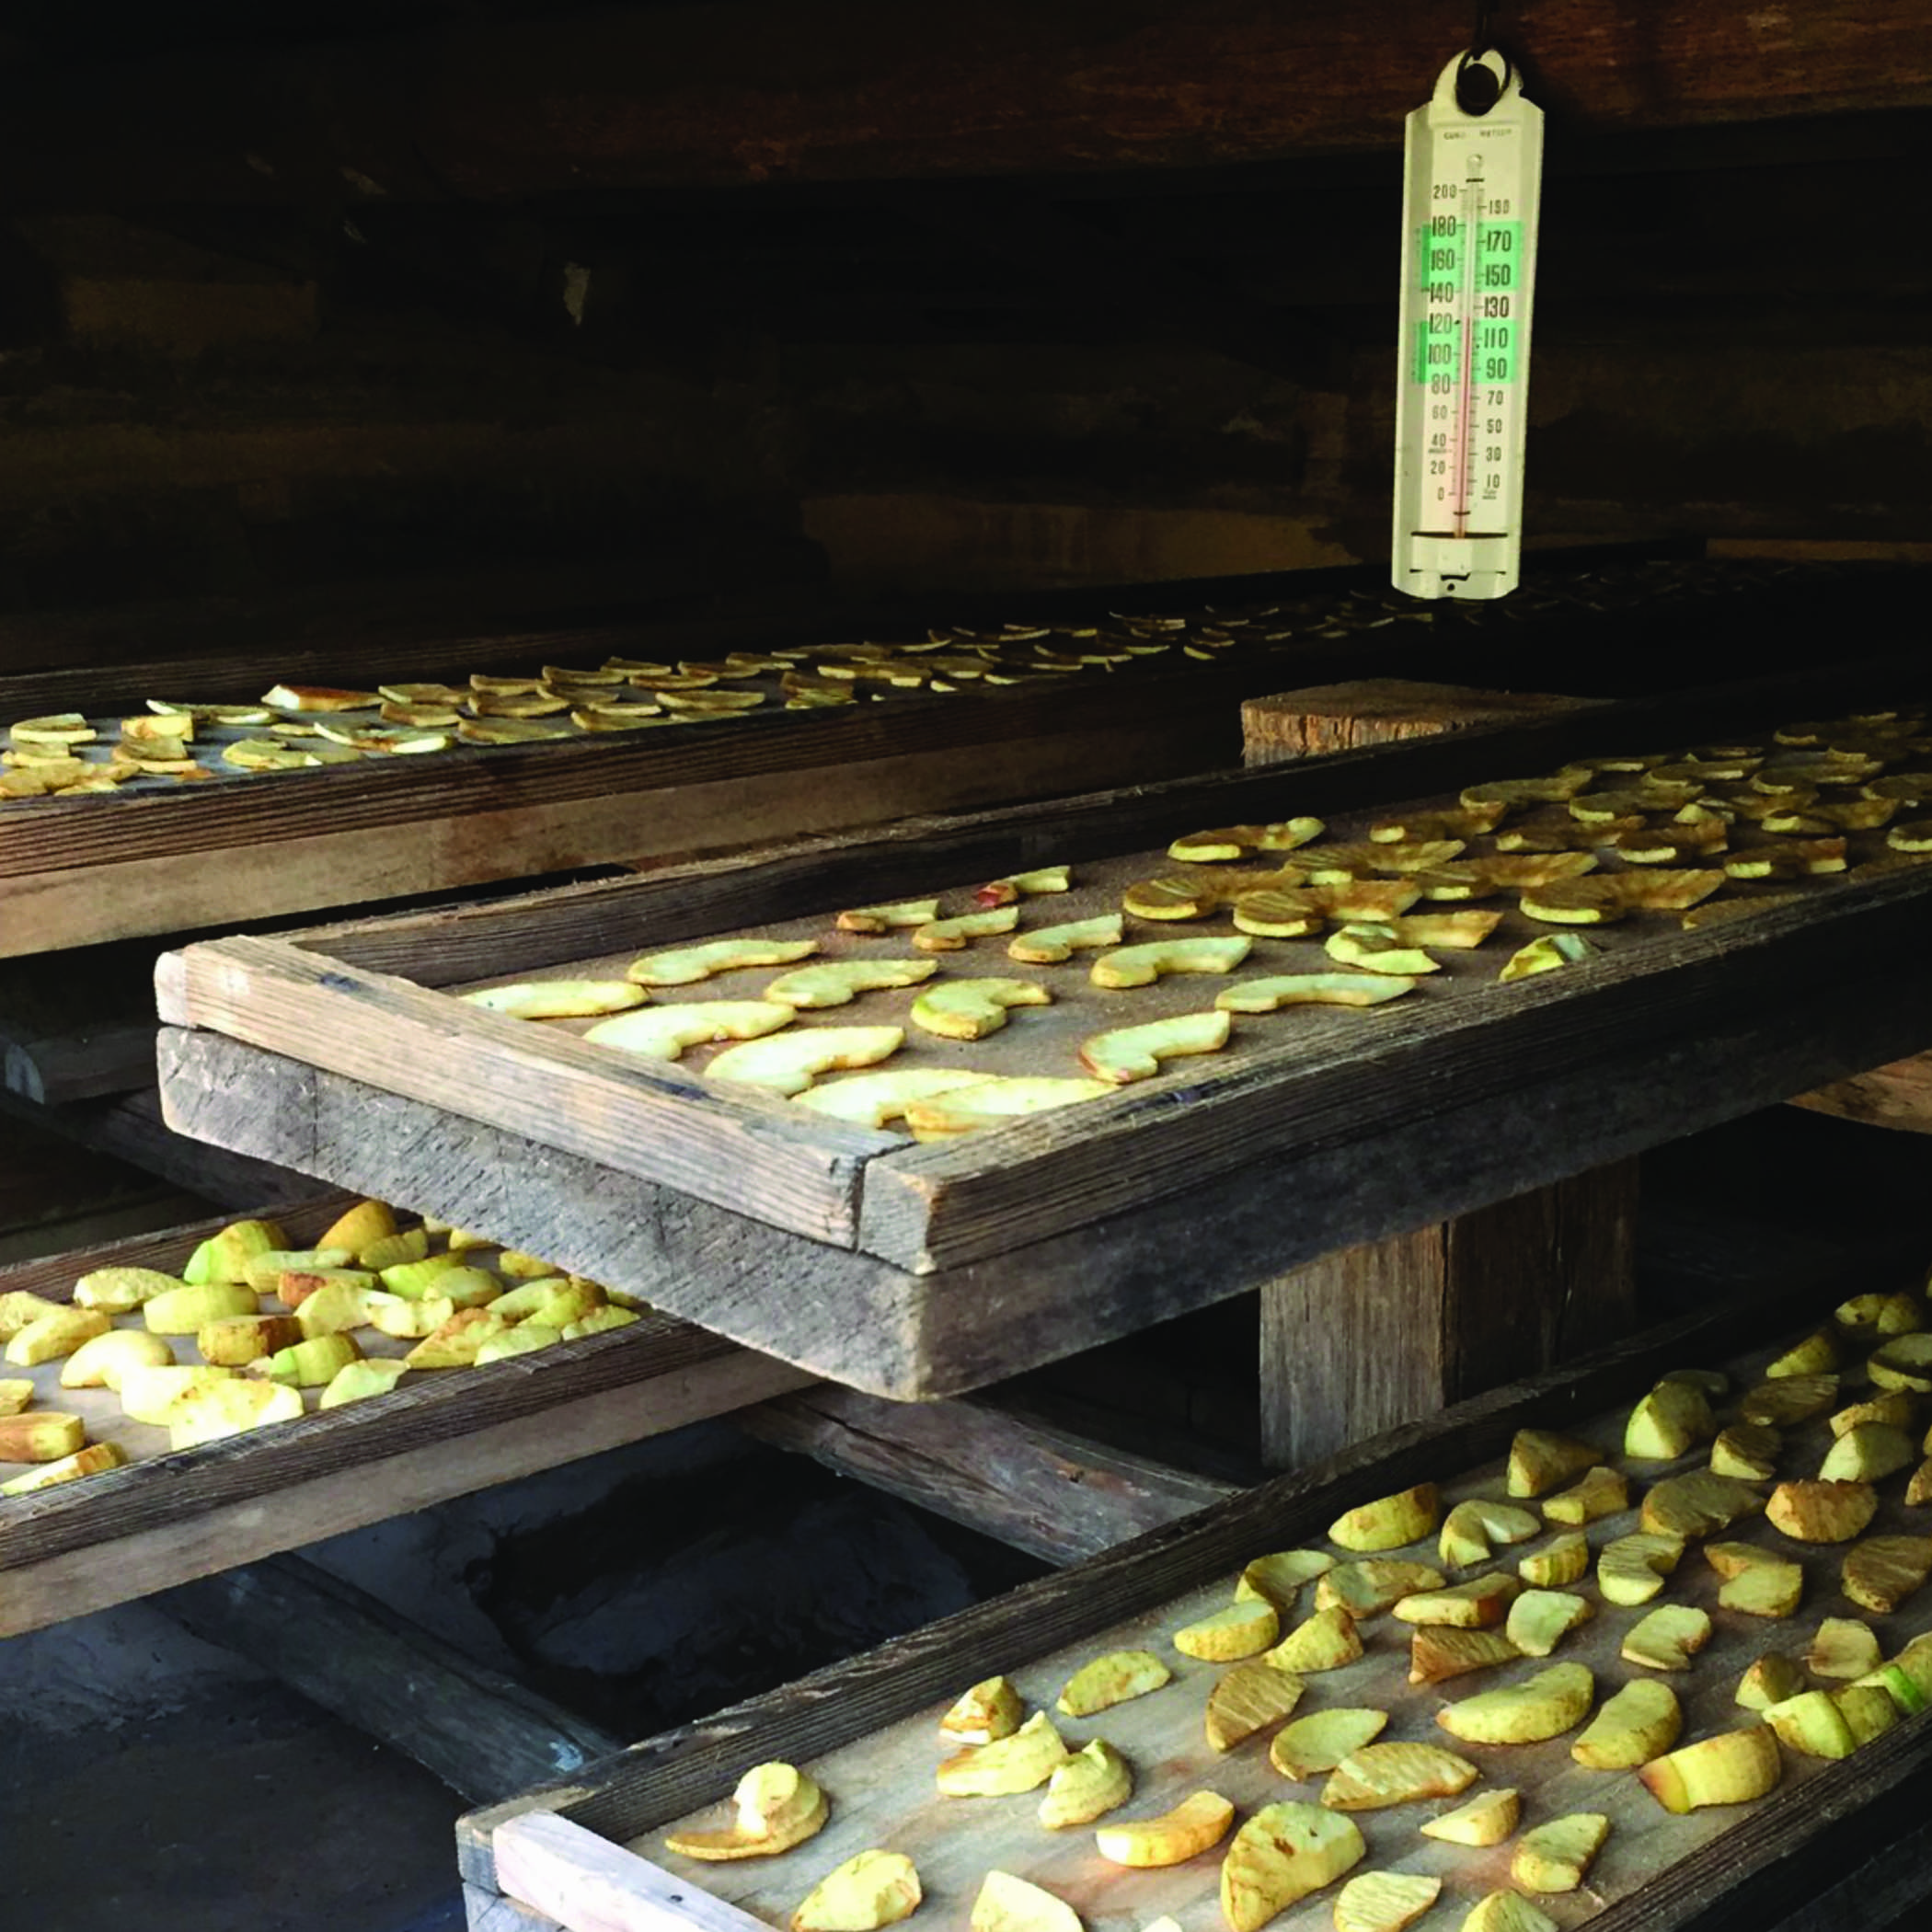 sliced apples on trays in the drying shed